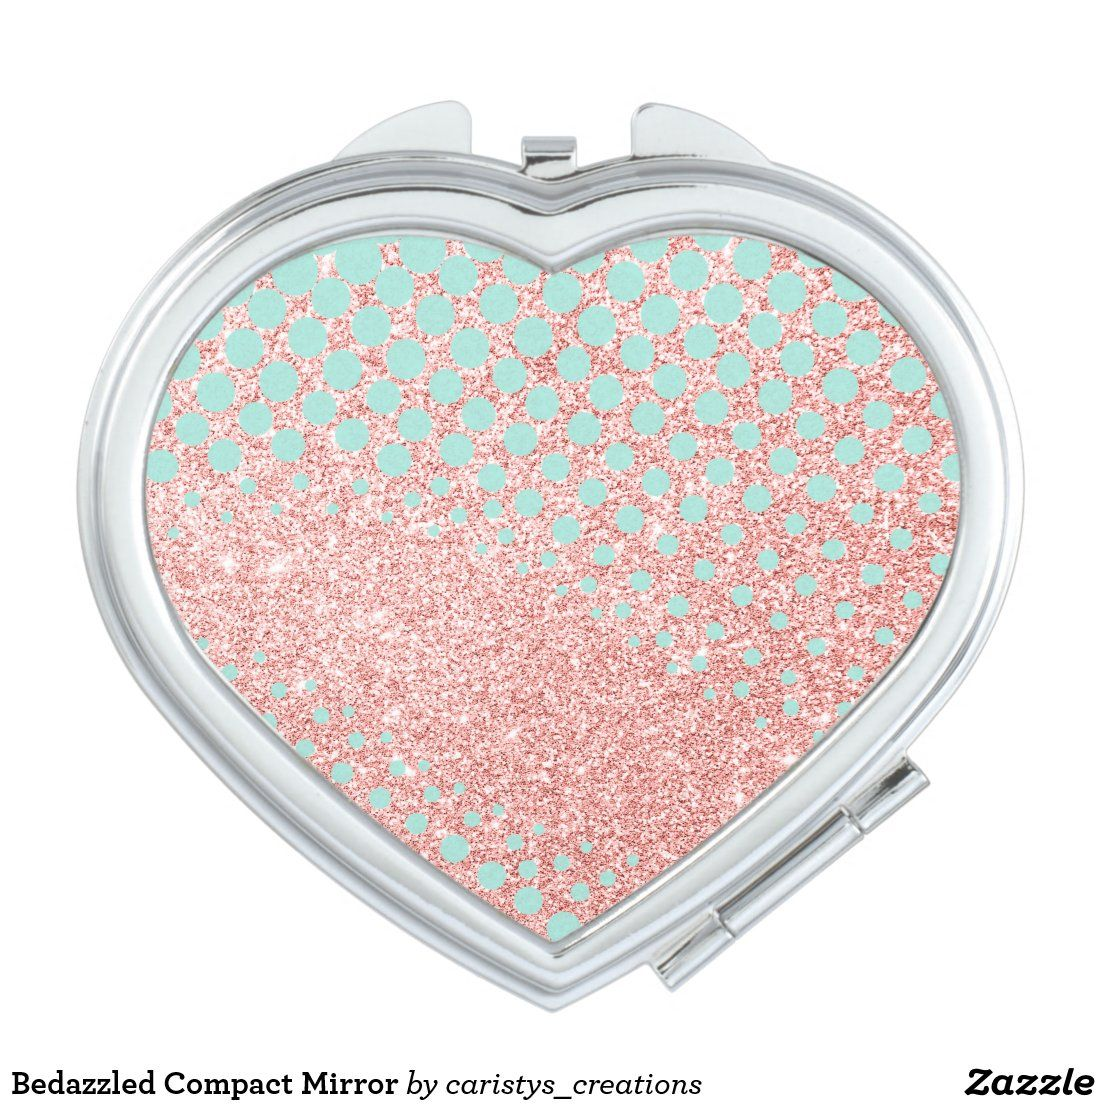 Bedazzled Compact Mirror